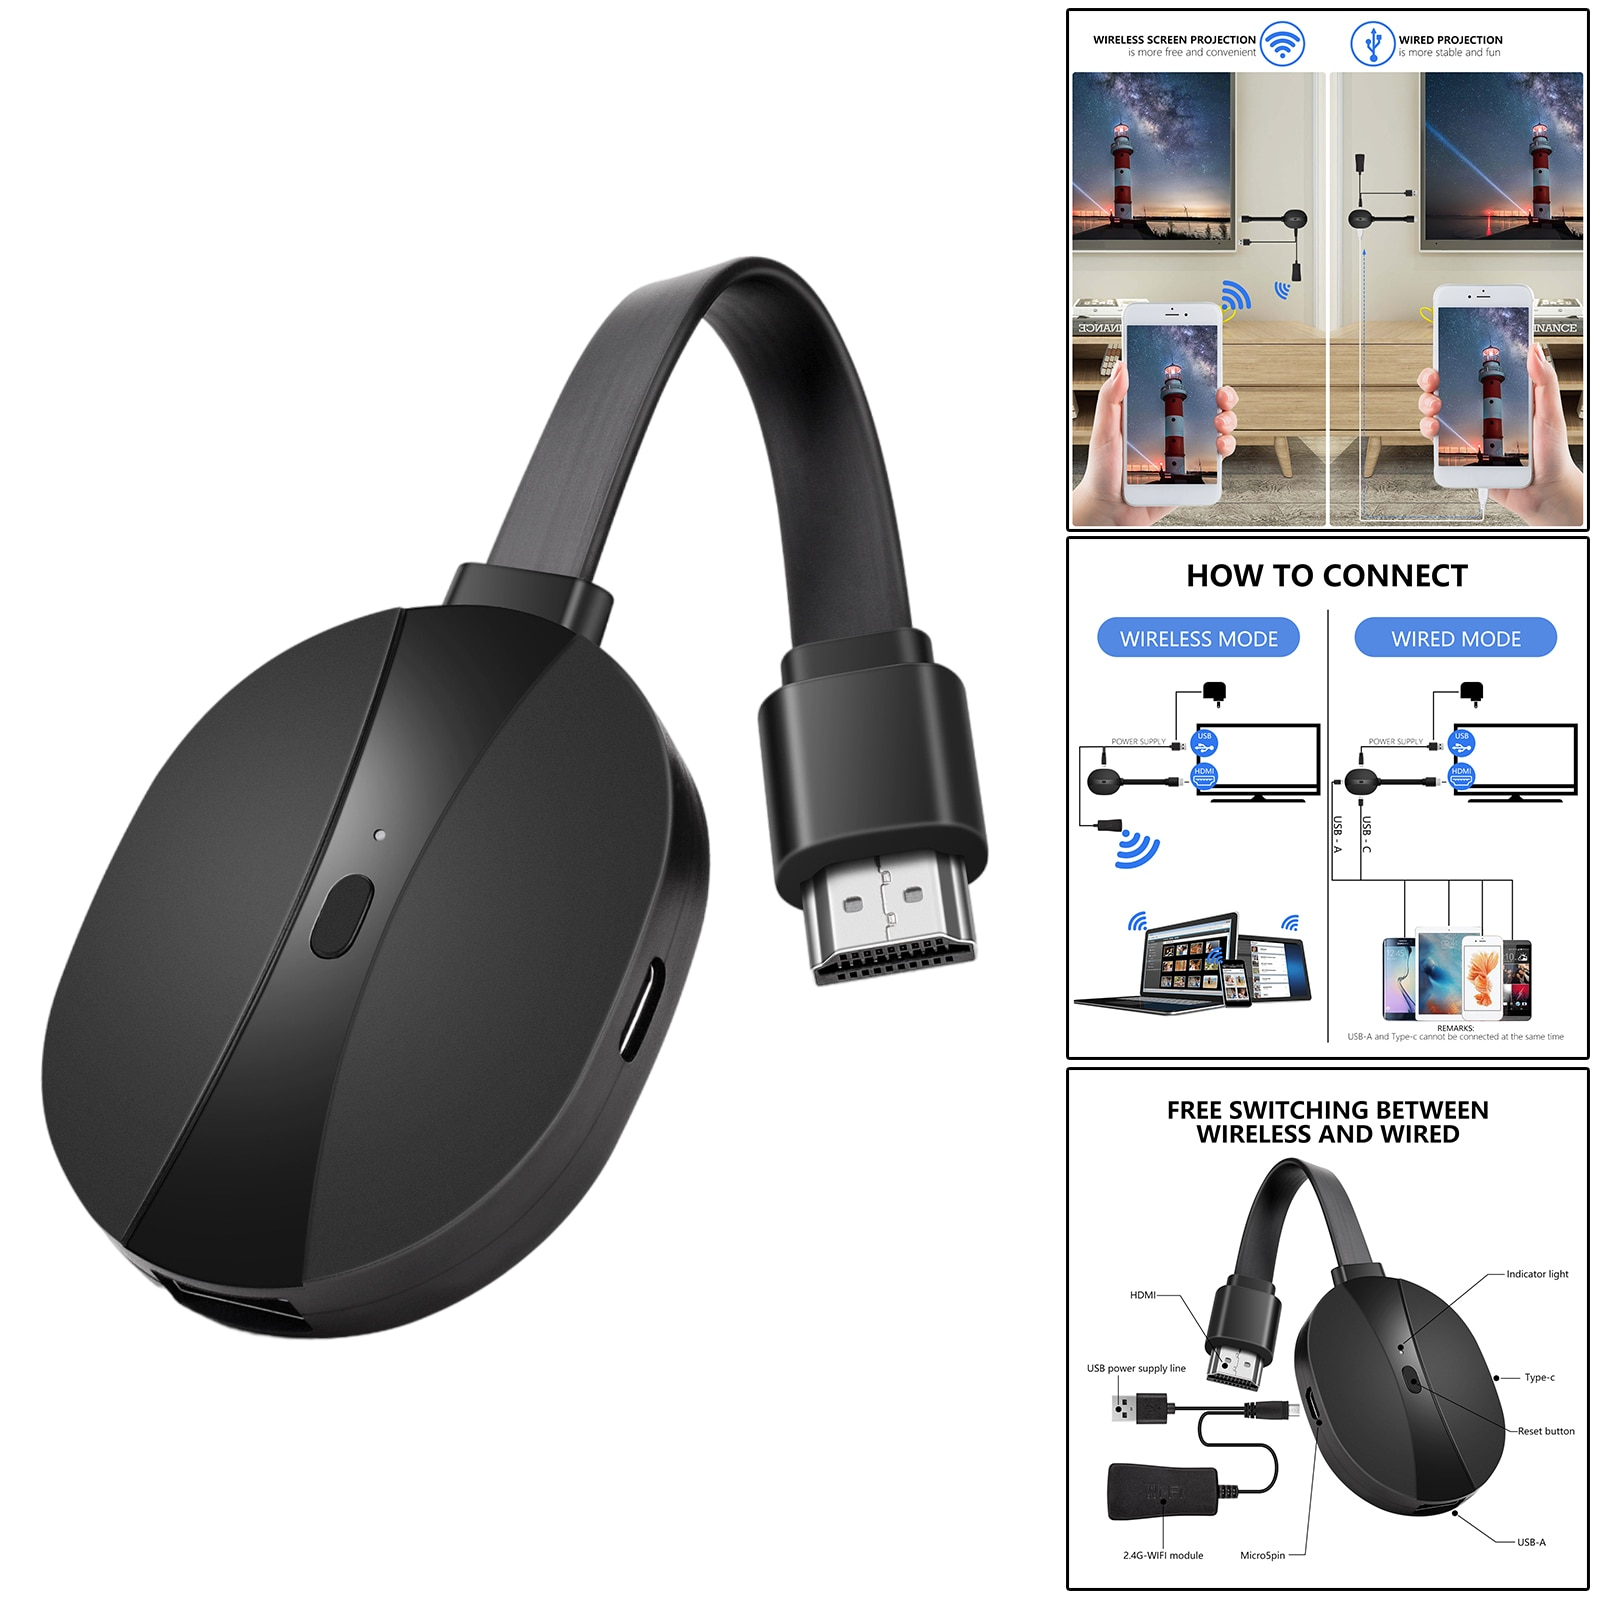 4K 2.4G Wireless  Adapter WIFI Display Dongle, Video Receiver, Easy to use